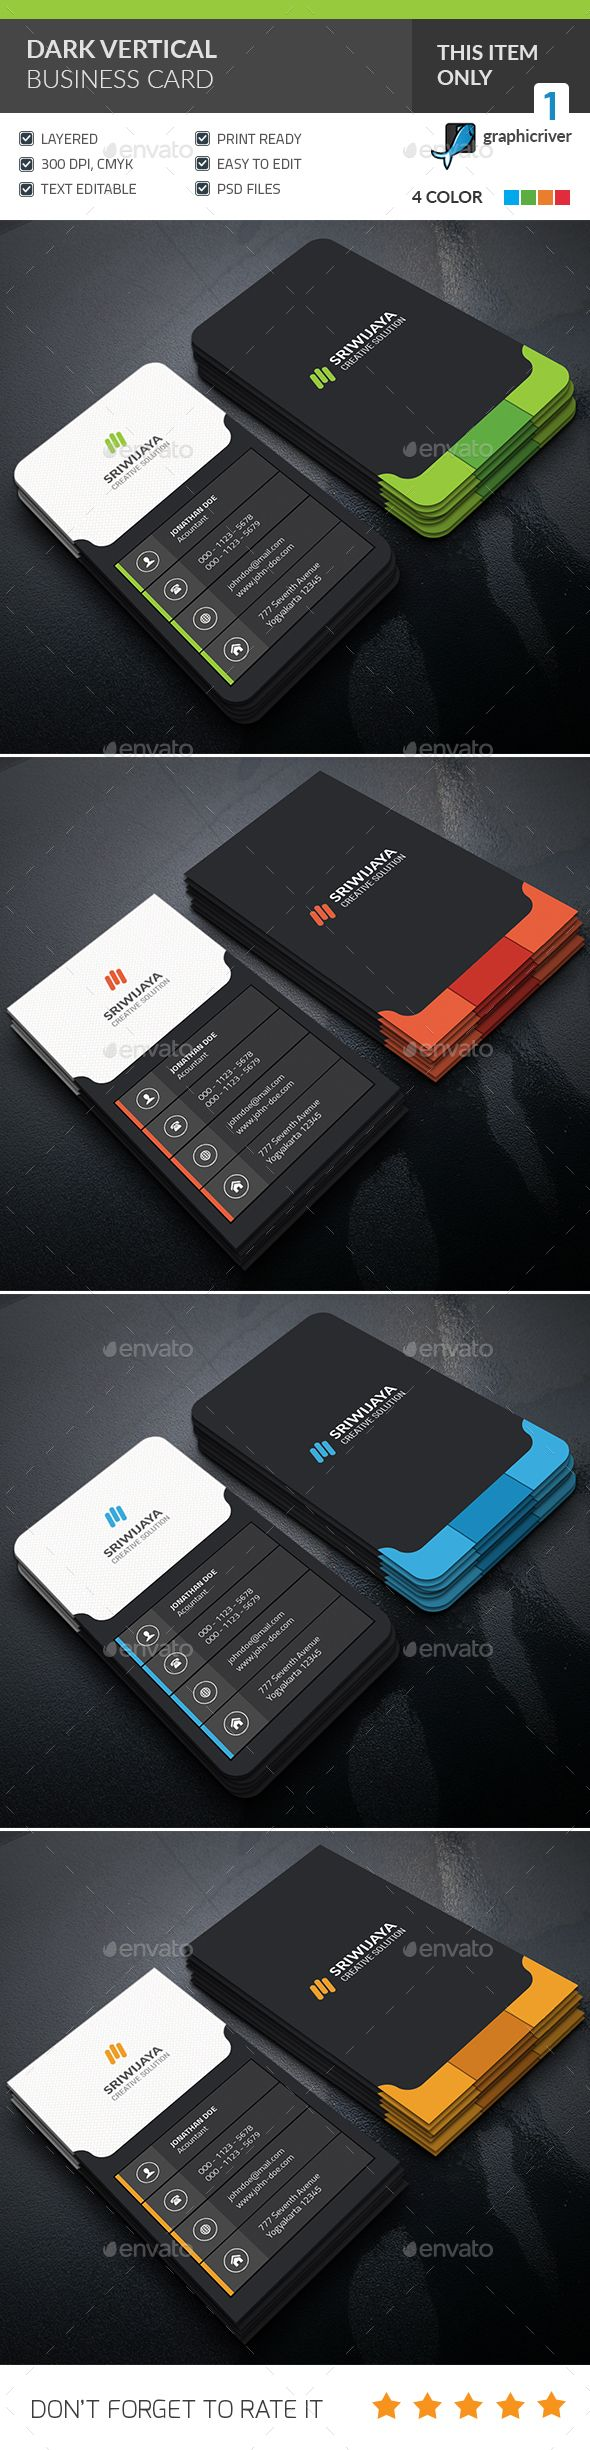 Dark Vertical Business Card — Photoshop PSD #business #company • Available here → https://graphicriver.net/item/dark-vertical-business-card-/15996616?ref=pxcr